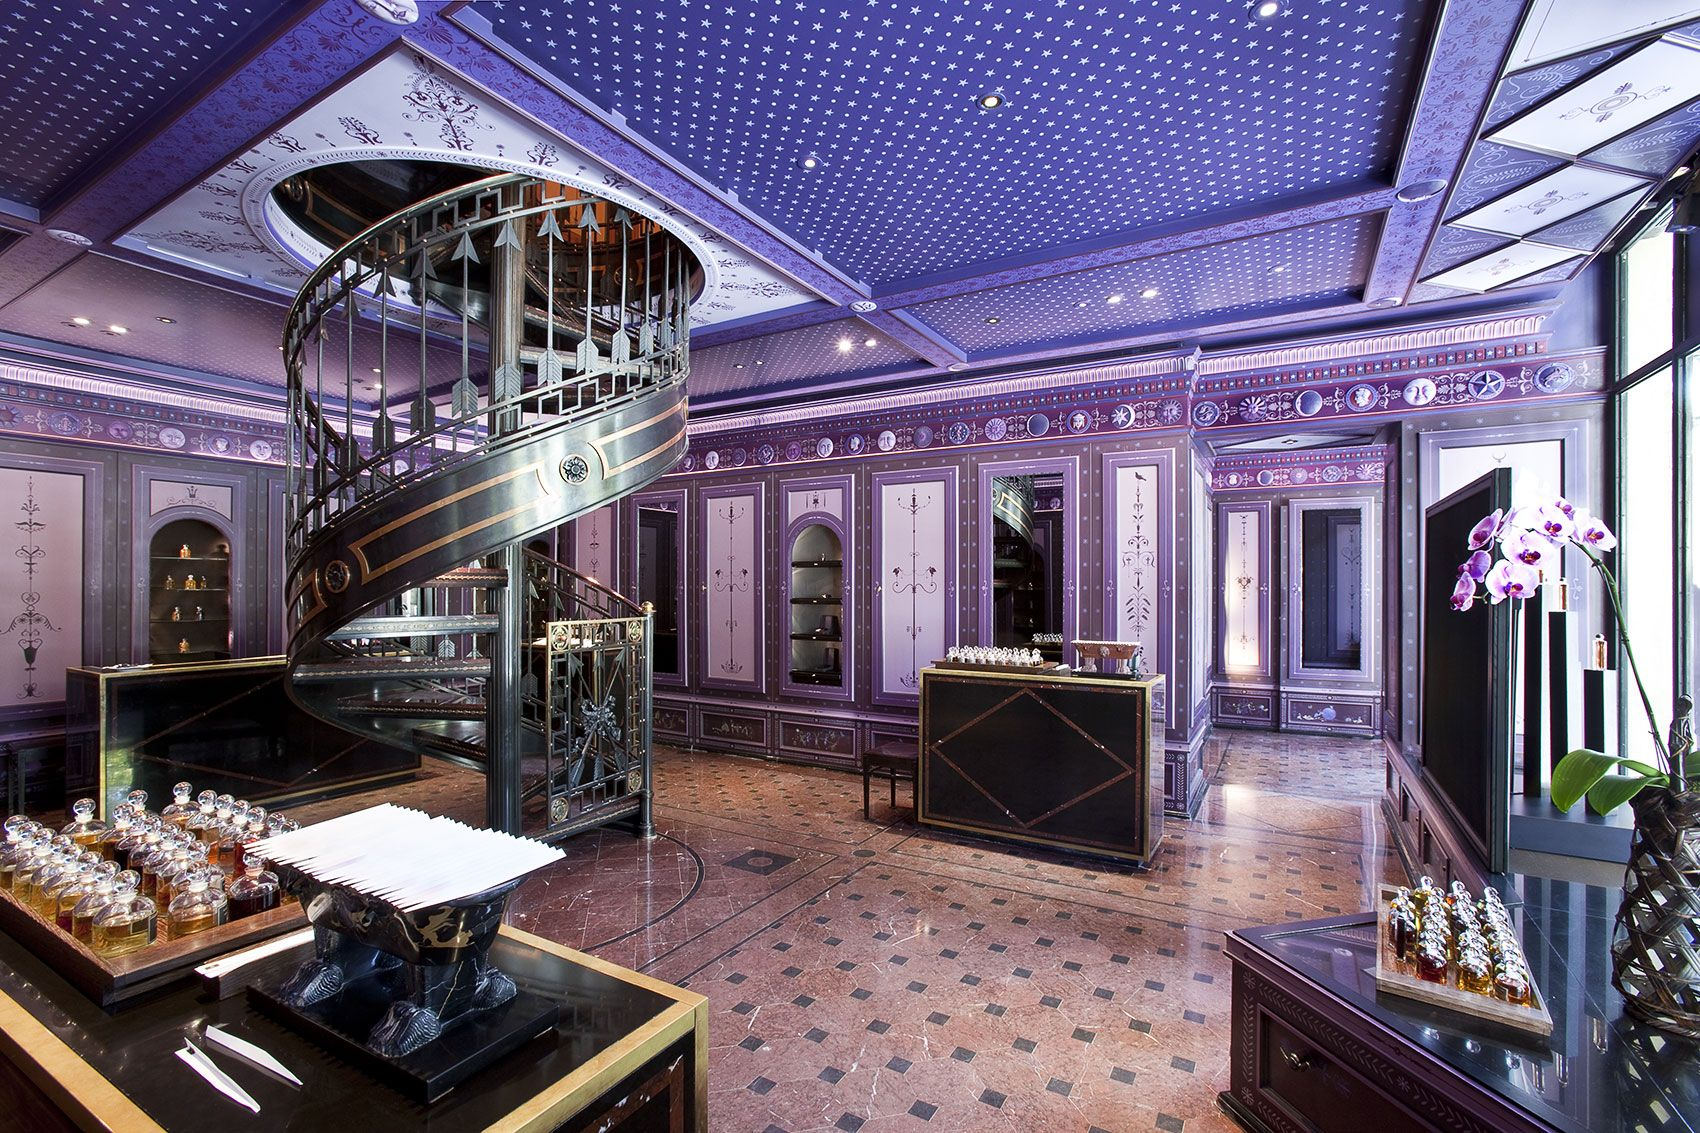 shiseido salons du palais royal by serge lutens paris there are many reasons i want to go to. Black Bedroom Furniture Sets. Home Design Ideas